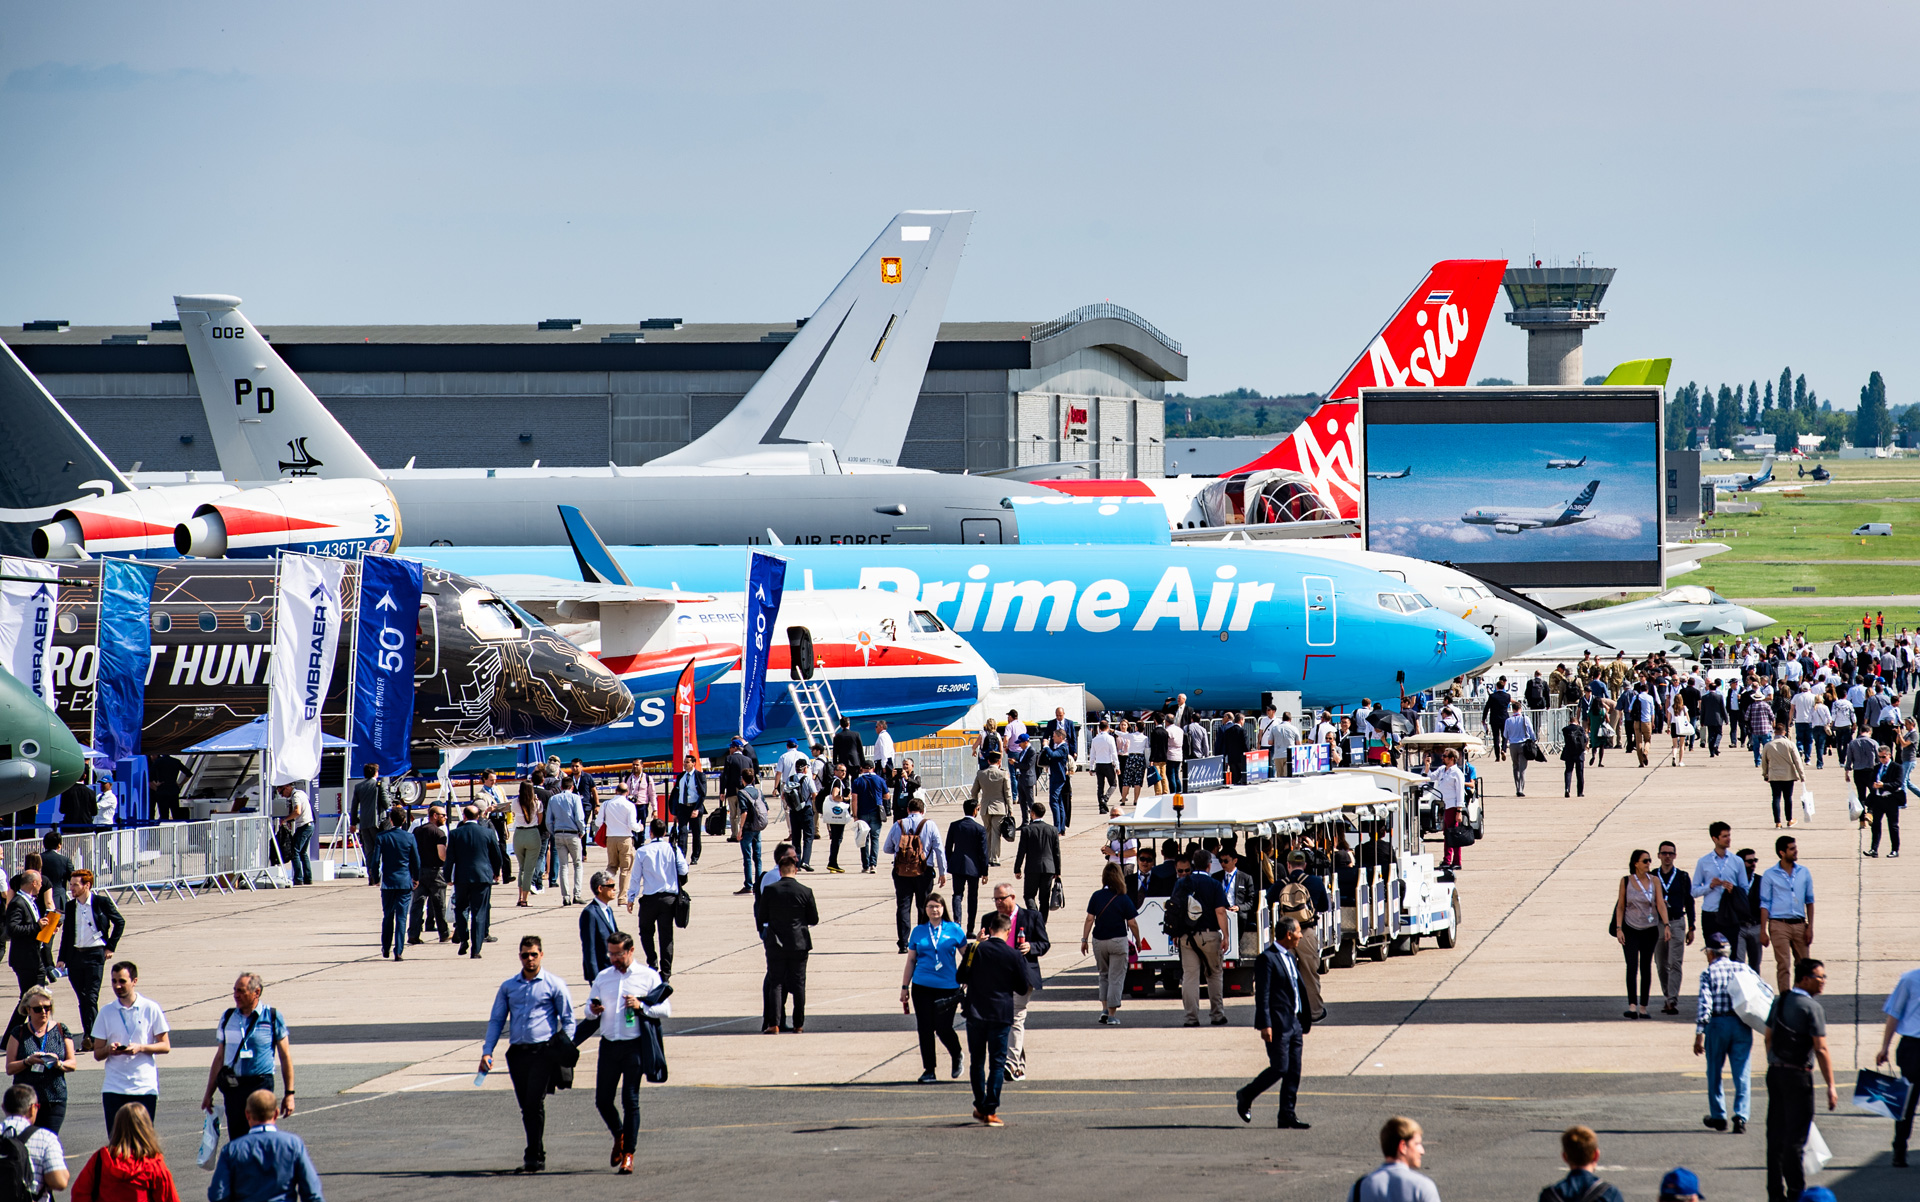 The 2019 edition of the historic Paris Air Show took place in June.